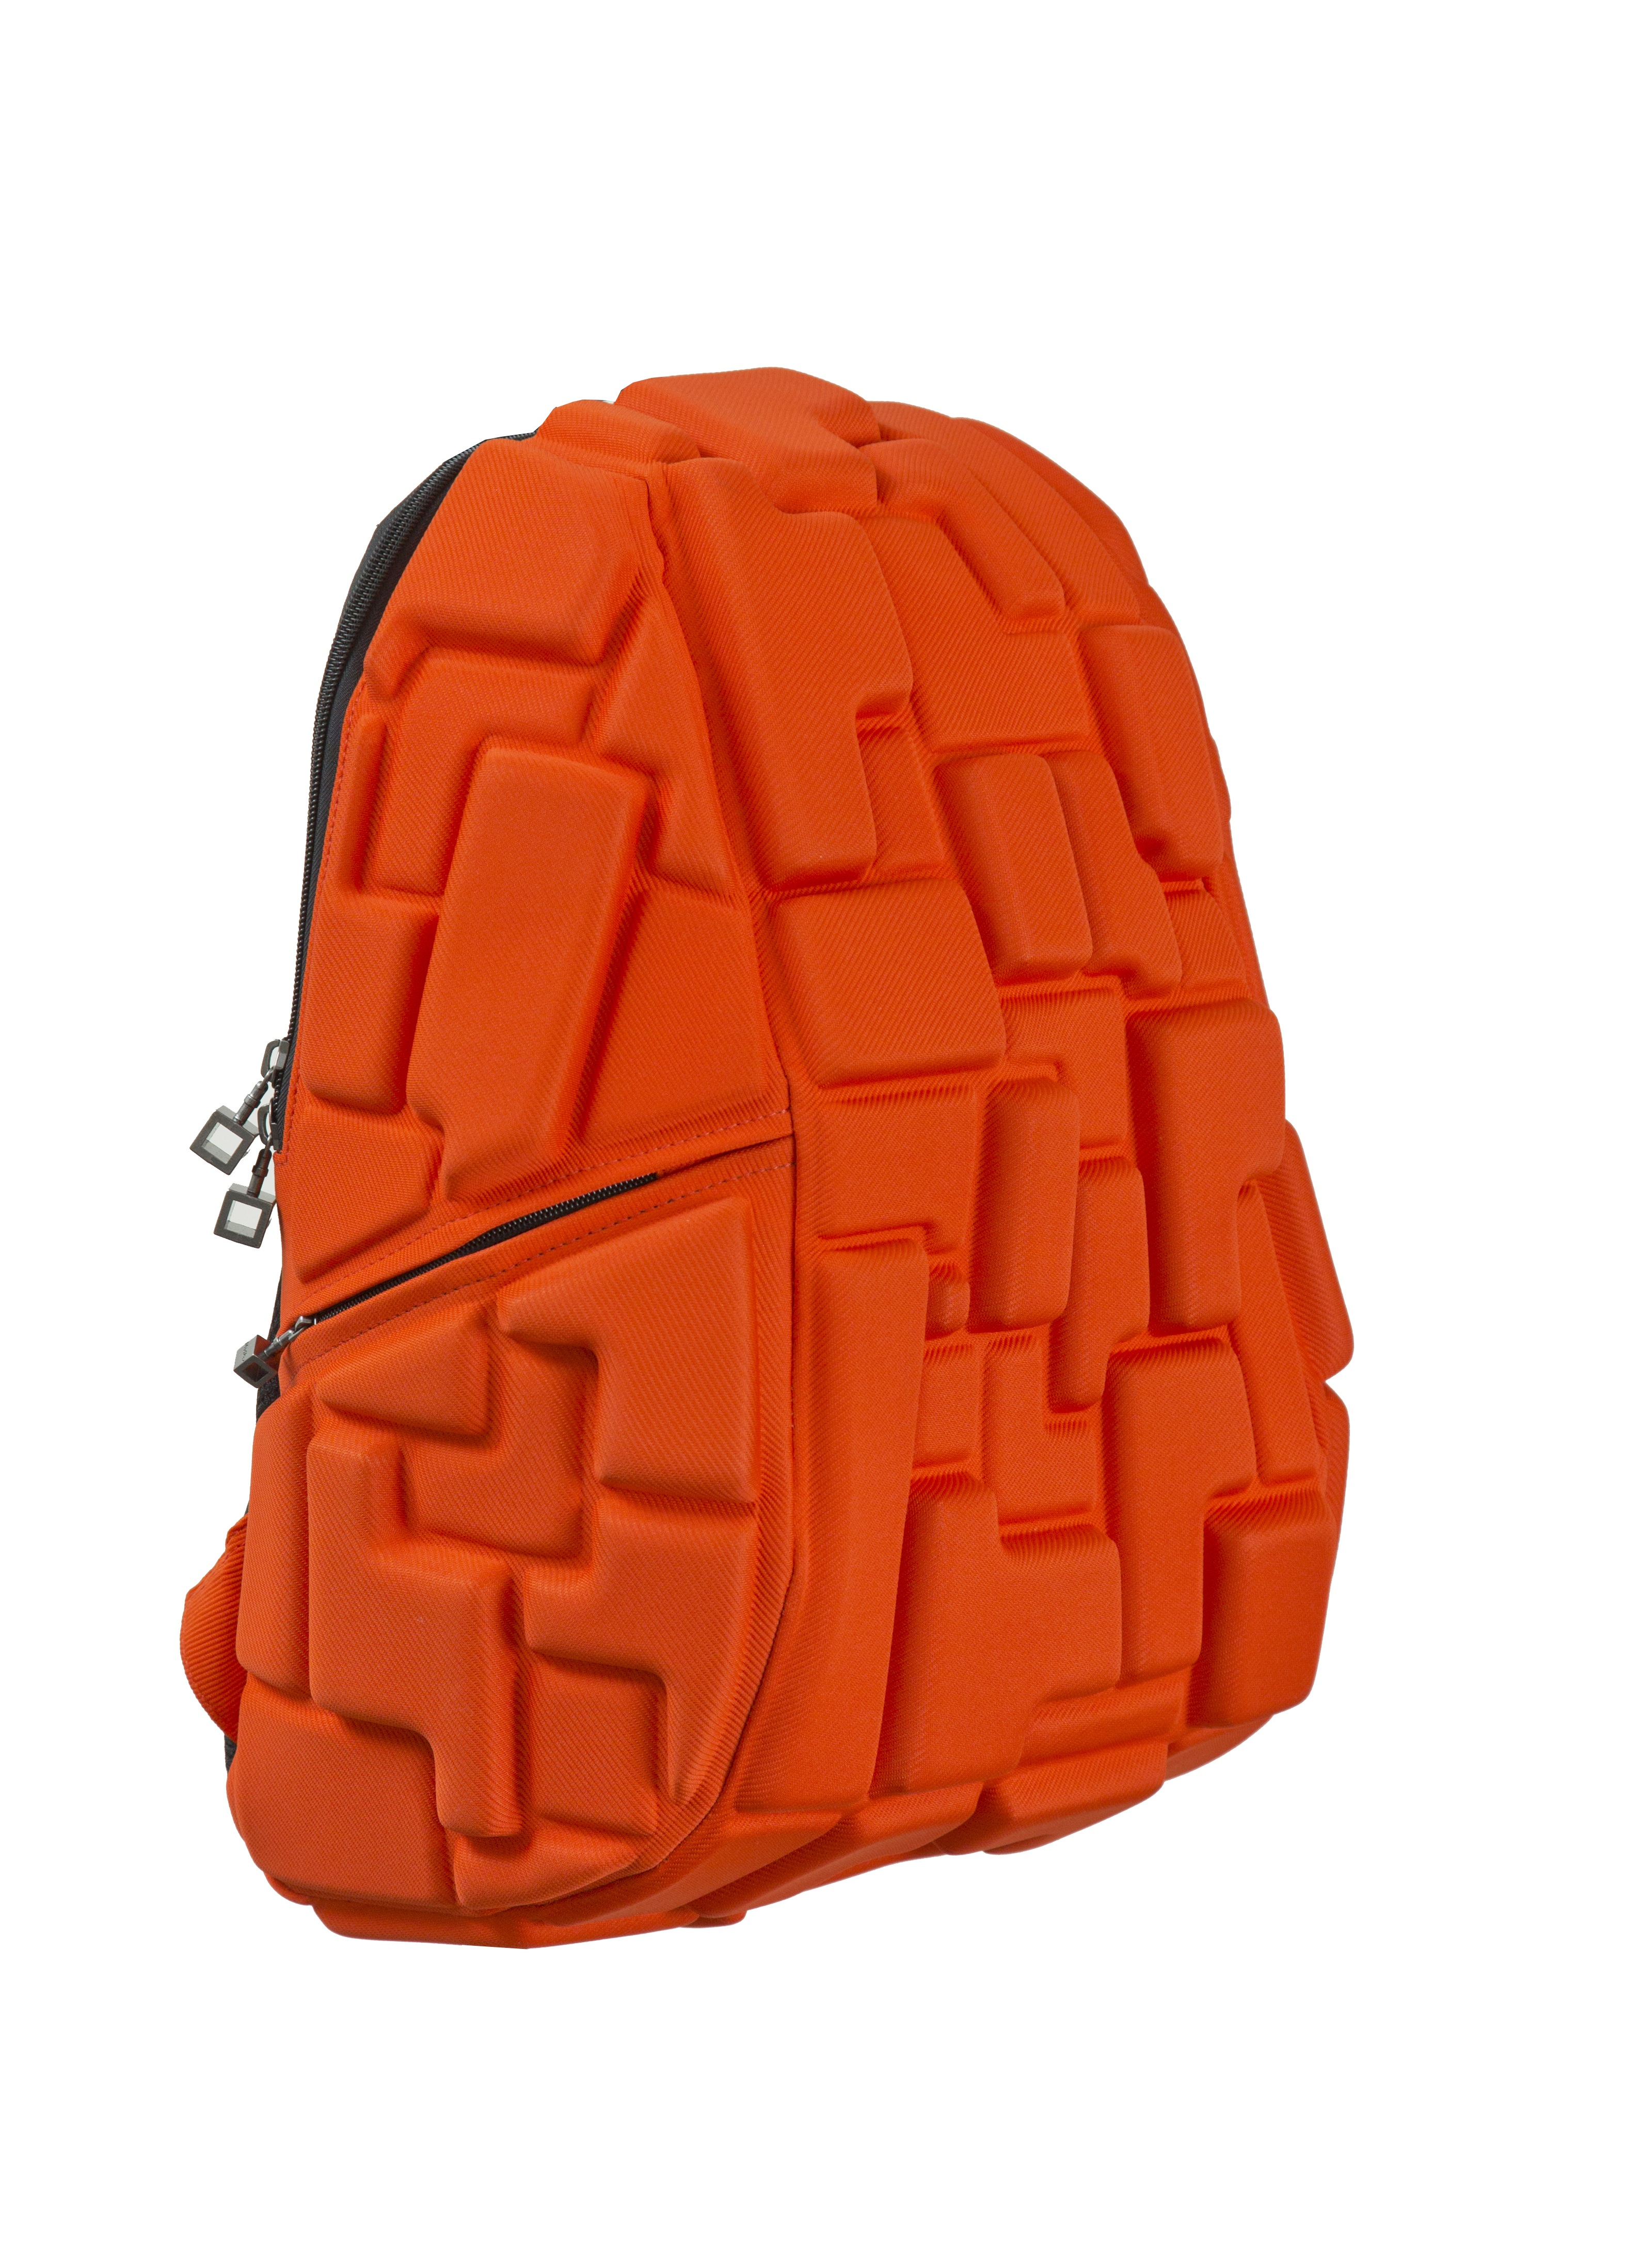 Coolest Backpacks For School 1ddIgoY4